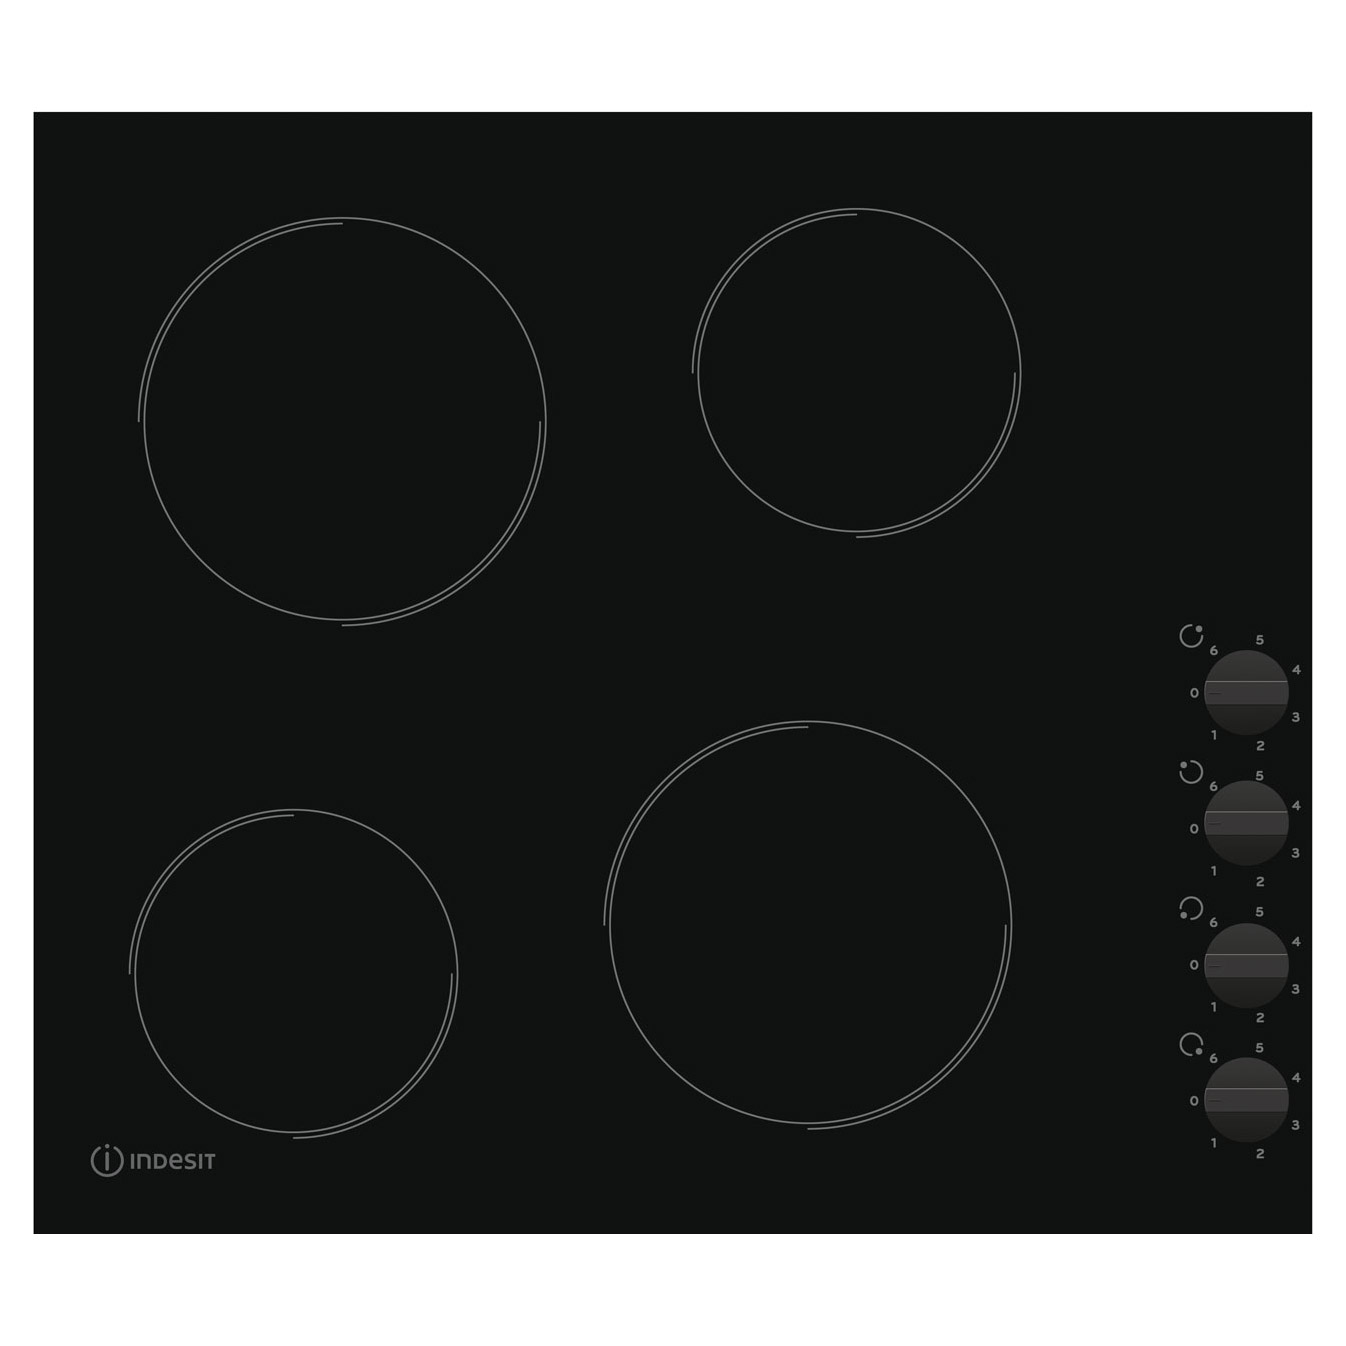 indesit ri860c 60cm frameless ceramic electric hob in black manual rh sonicdirect co uk neff t11d41x2 ceramic hob manual neff t11d41x2 ceramic hob manual